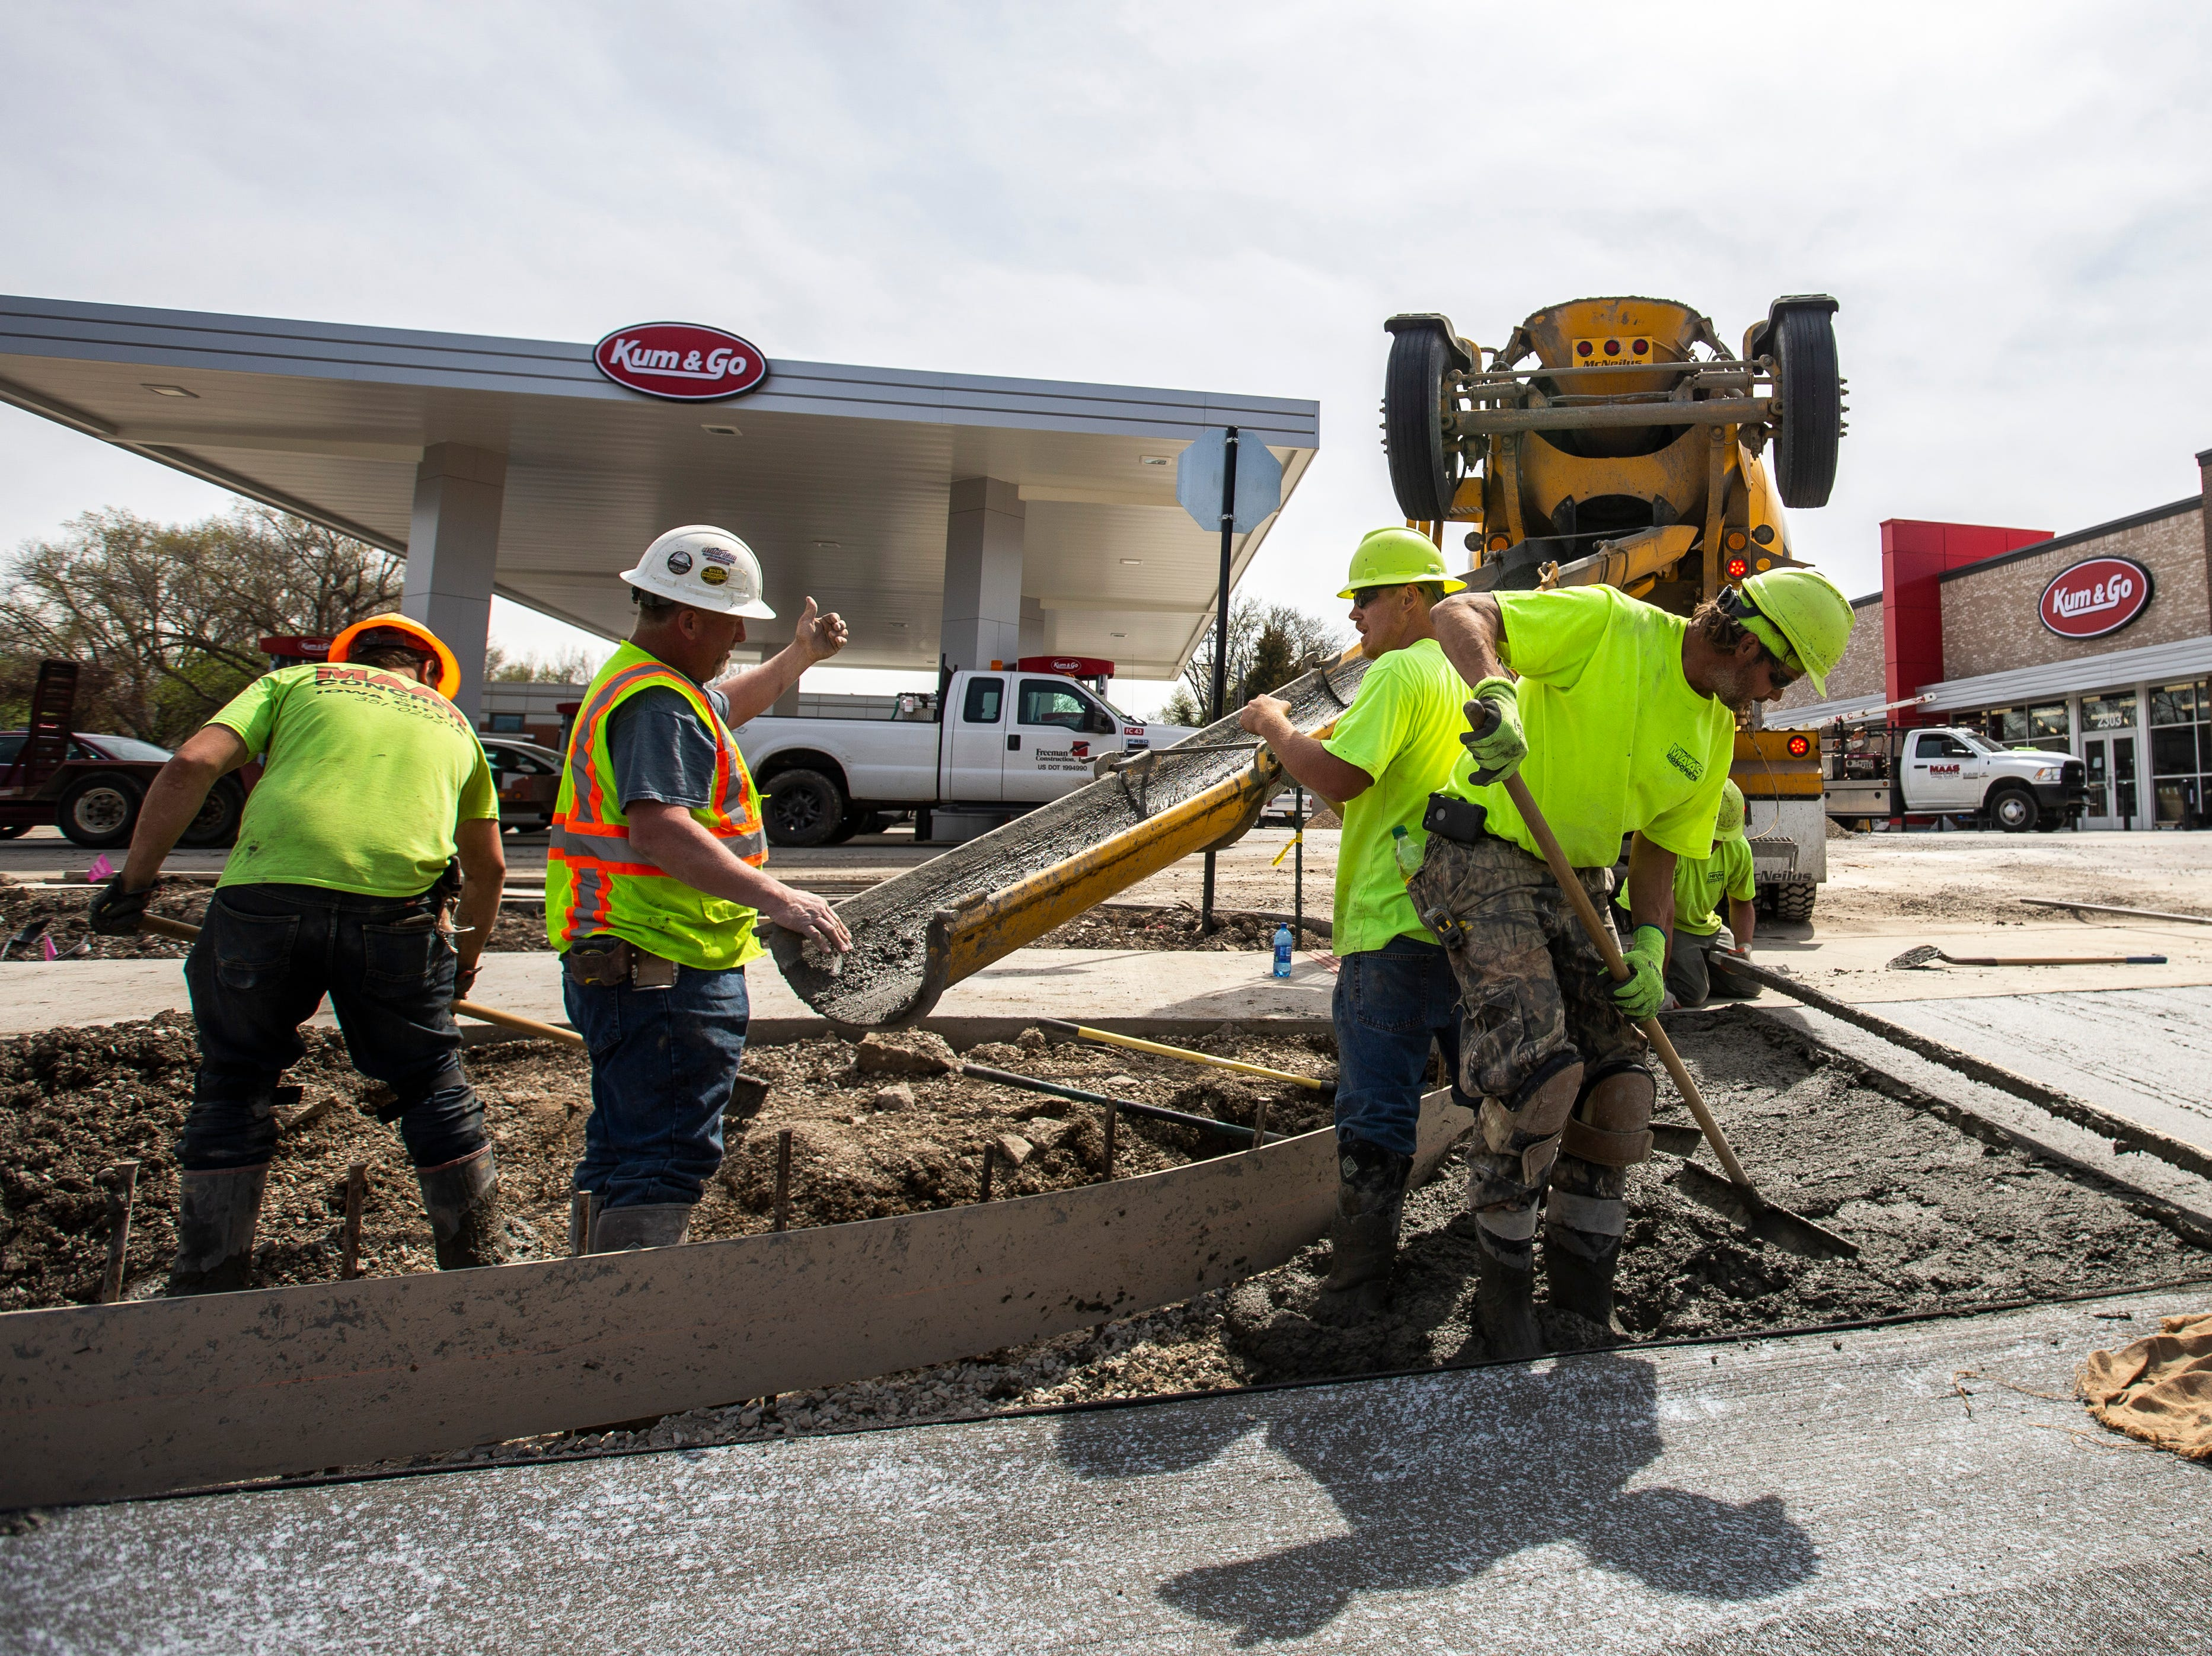 Bud Maas Concrete foreman Steve Conley, second from left, gives instructions while concrete gets poured for an entrance off of Muscatine Ave. while construction nears competition, Tuesday, April 23, 2019, at a new Kum & Go location on the corner of Muscatine and First Avenues on the east side of Iowa City, Iowa.